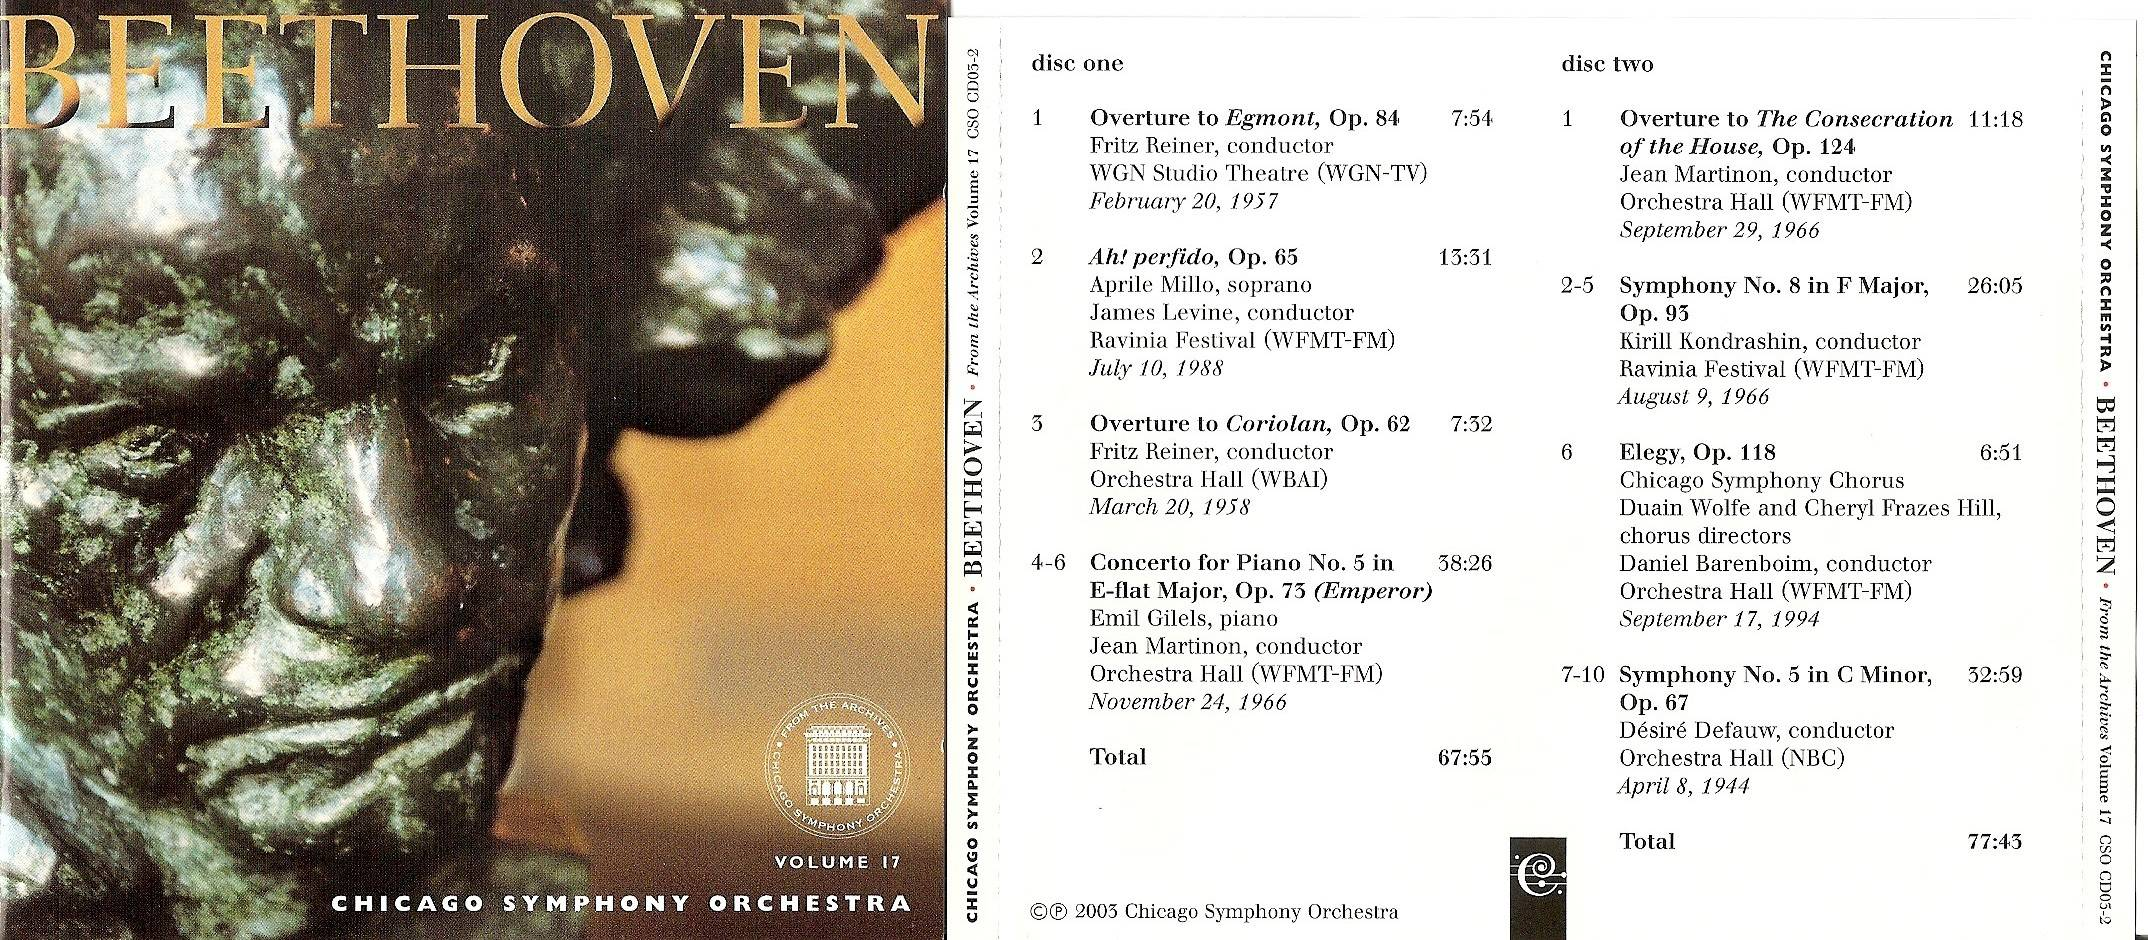 Chicago Symphony Orchestra - From The Archives, Vol.17: Beethoven, 2-CD set (2003)